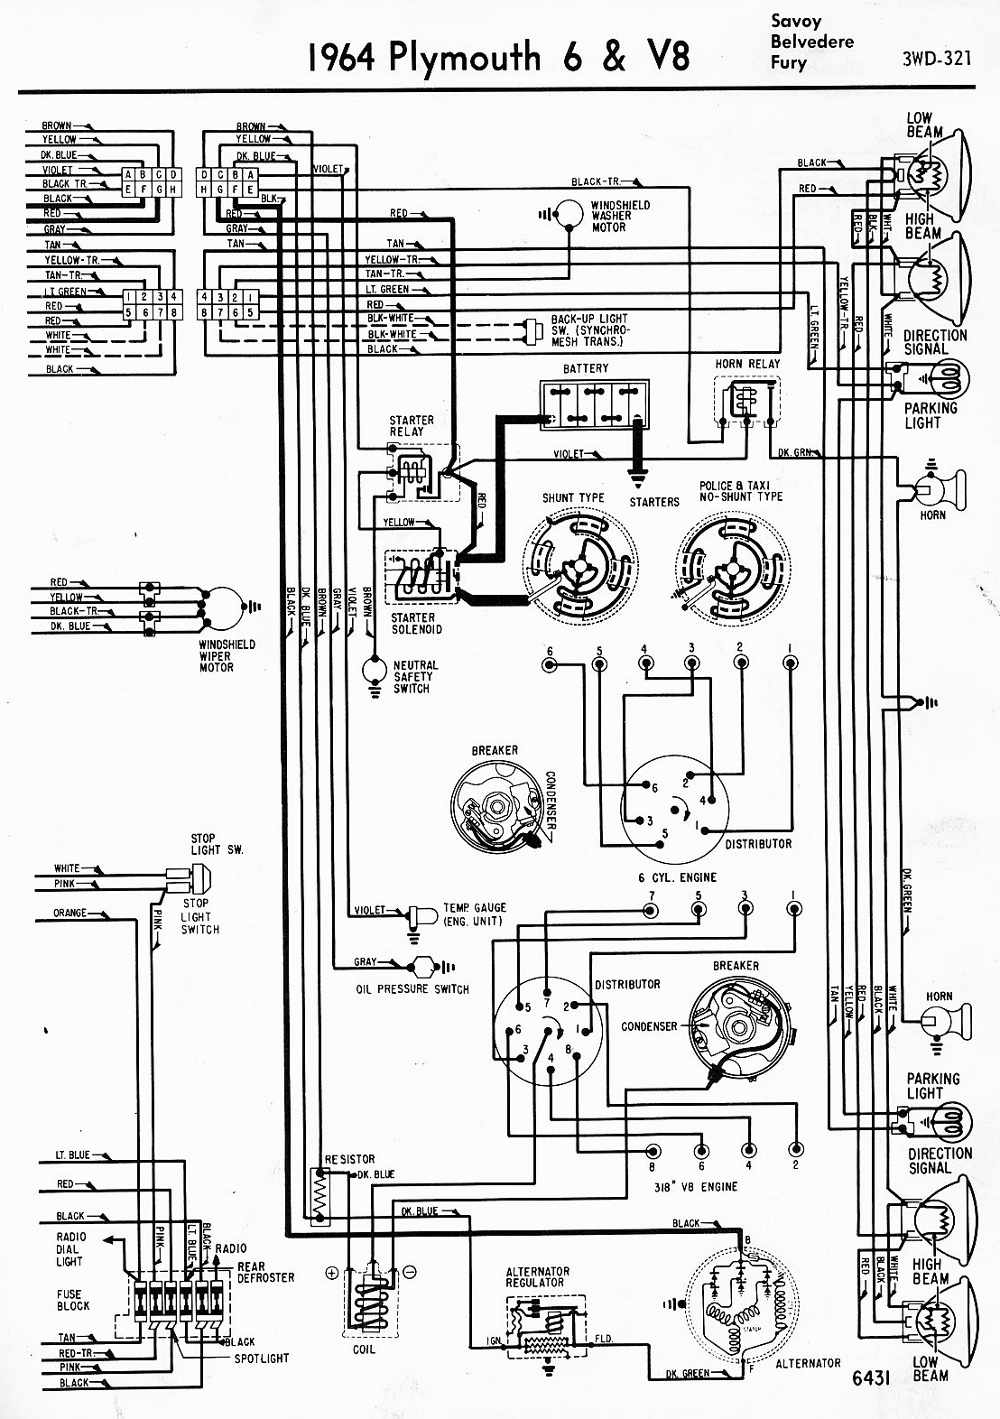 medium resolution of 1974 plymouth fury wiring diagram wiring library 1965 barracuda wiring diagram 1965 plymouth belvedere wiring diagram